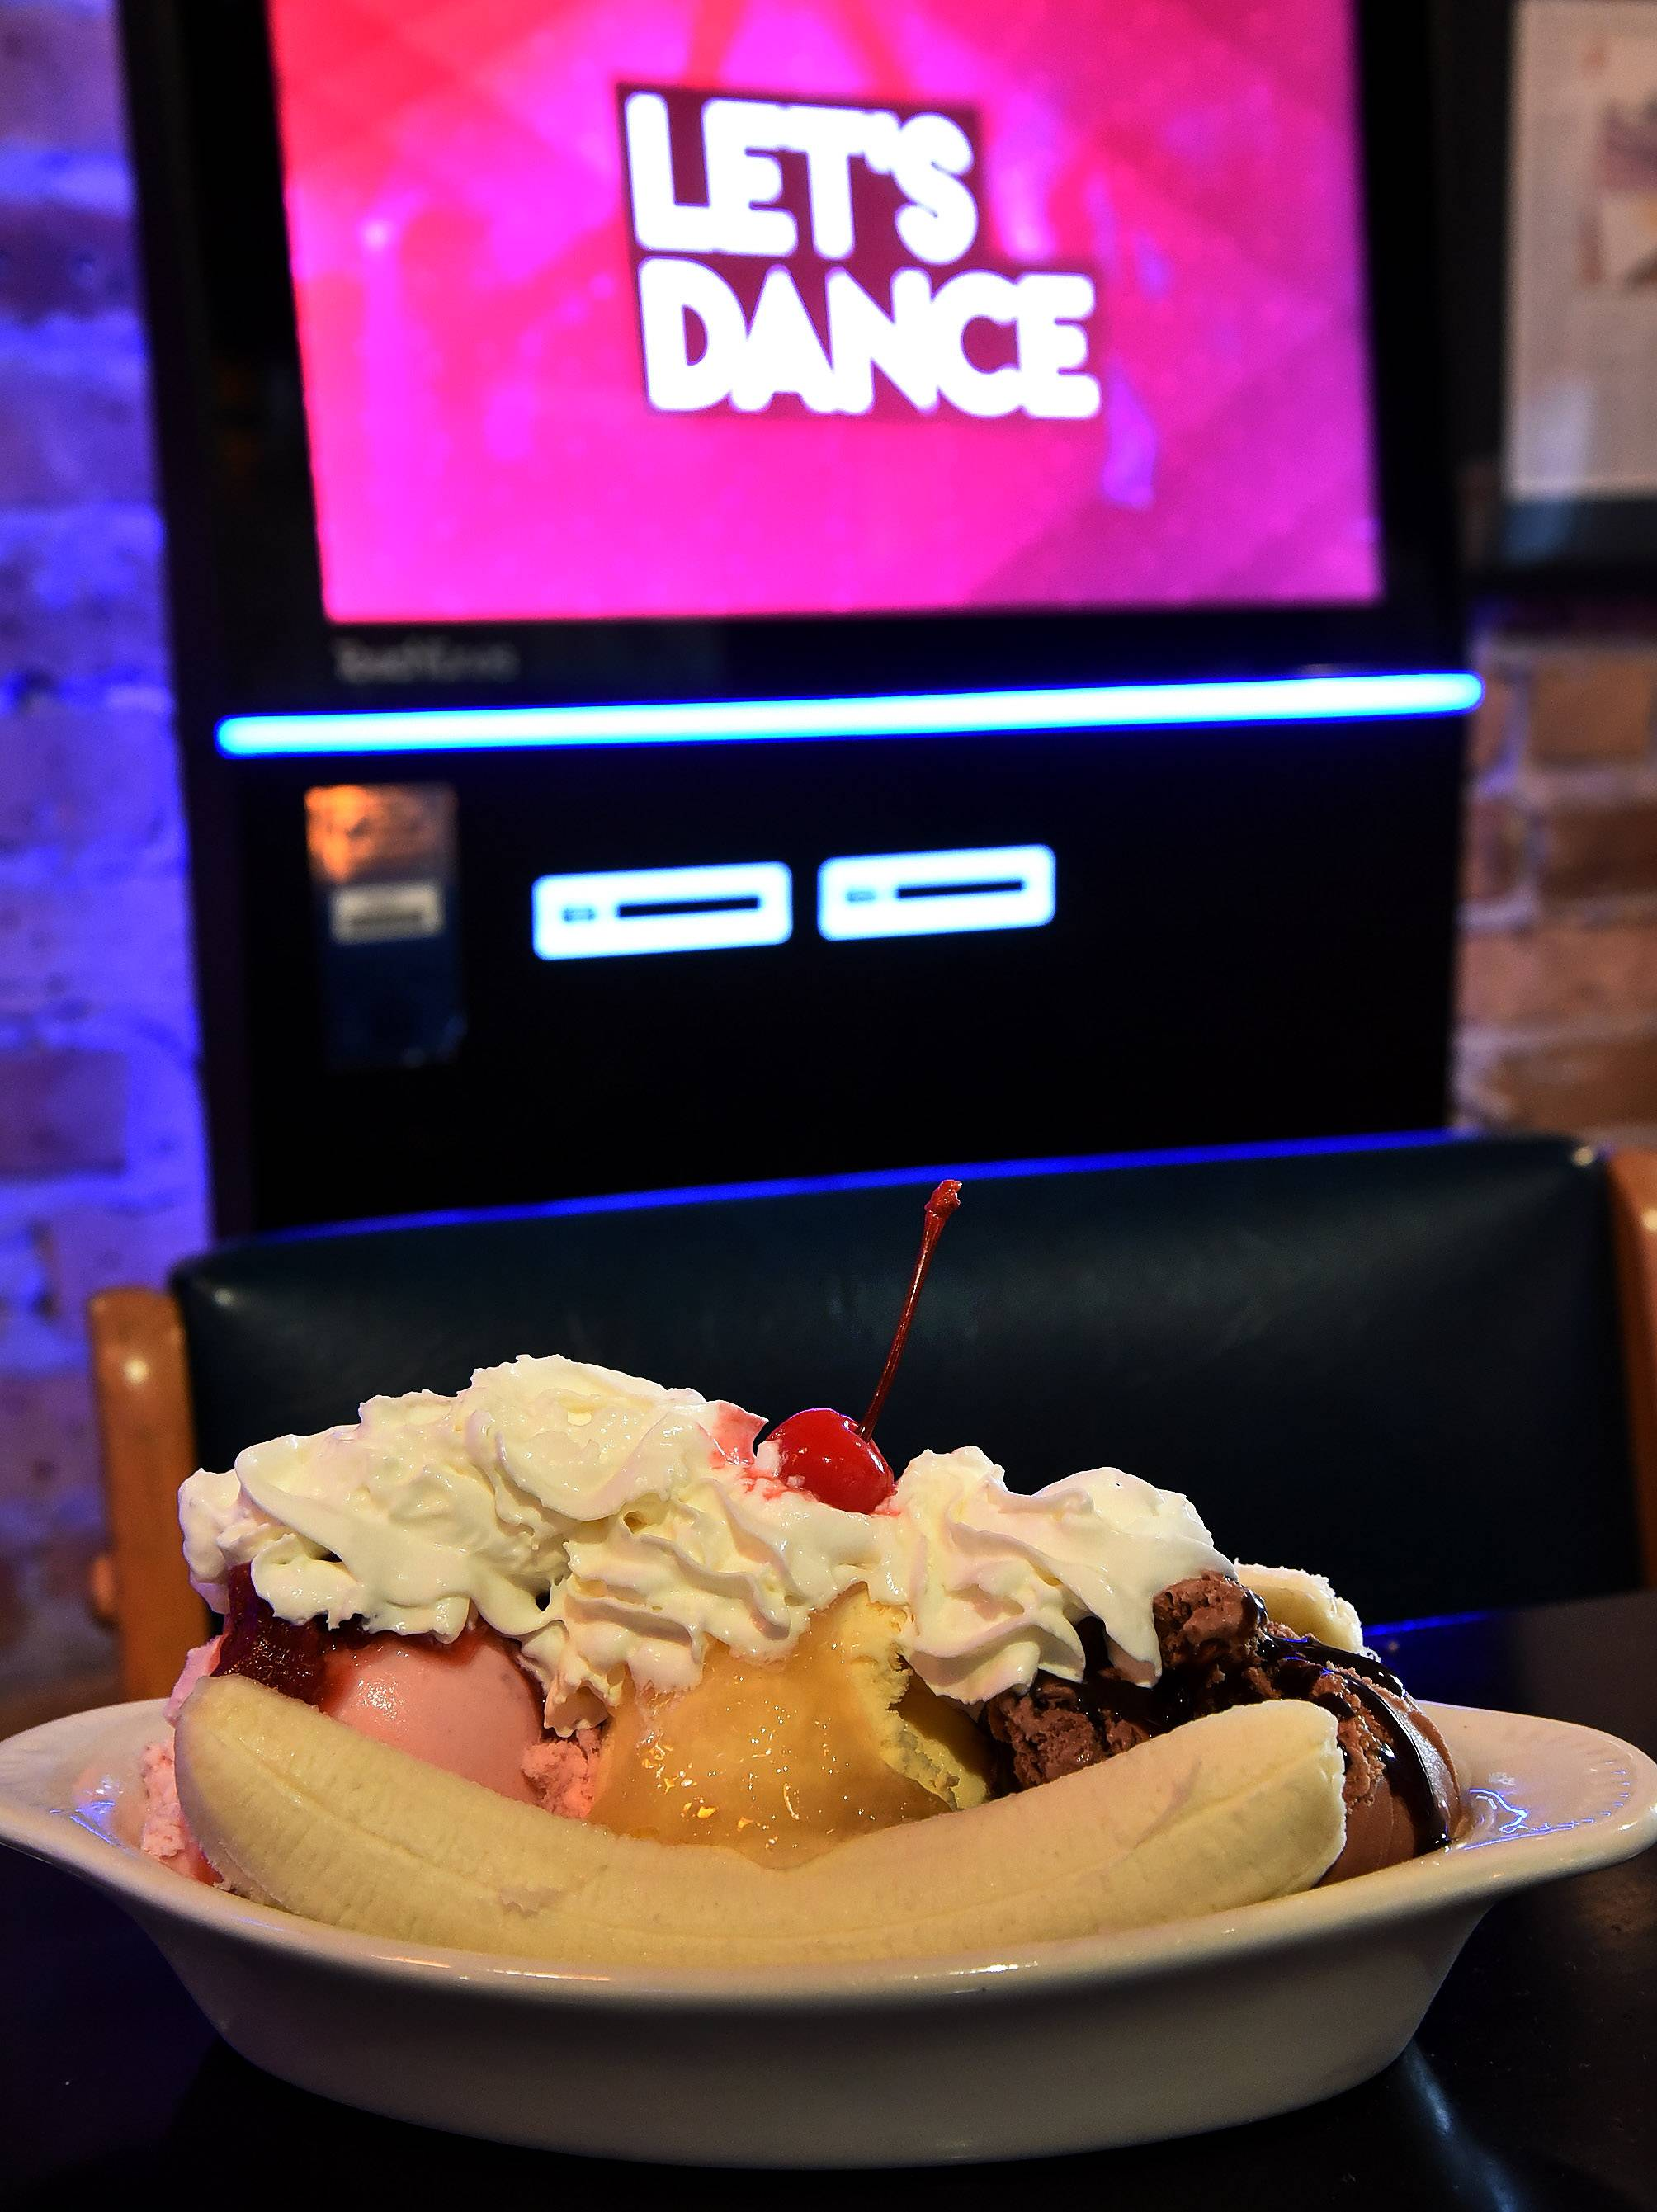 When's the last time you had a banana split? Remember Charlotte's in Barrington serves this throwback dessert.